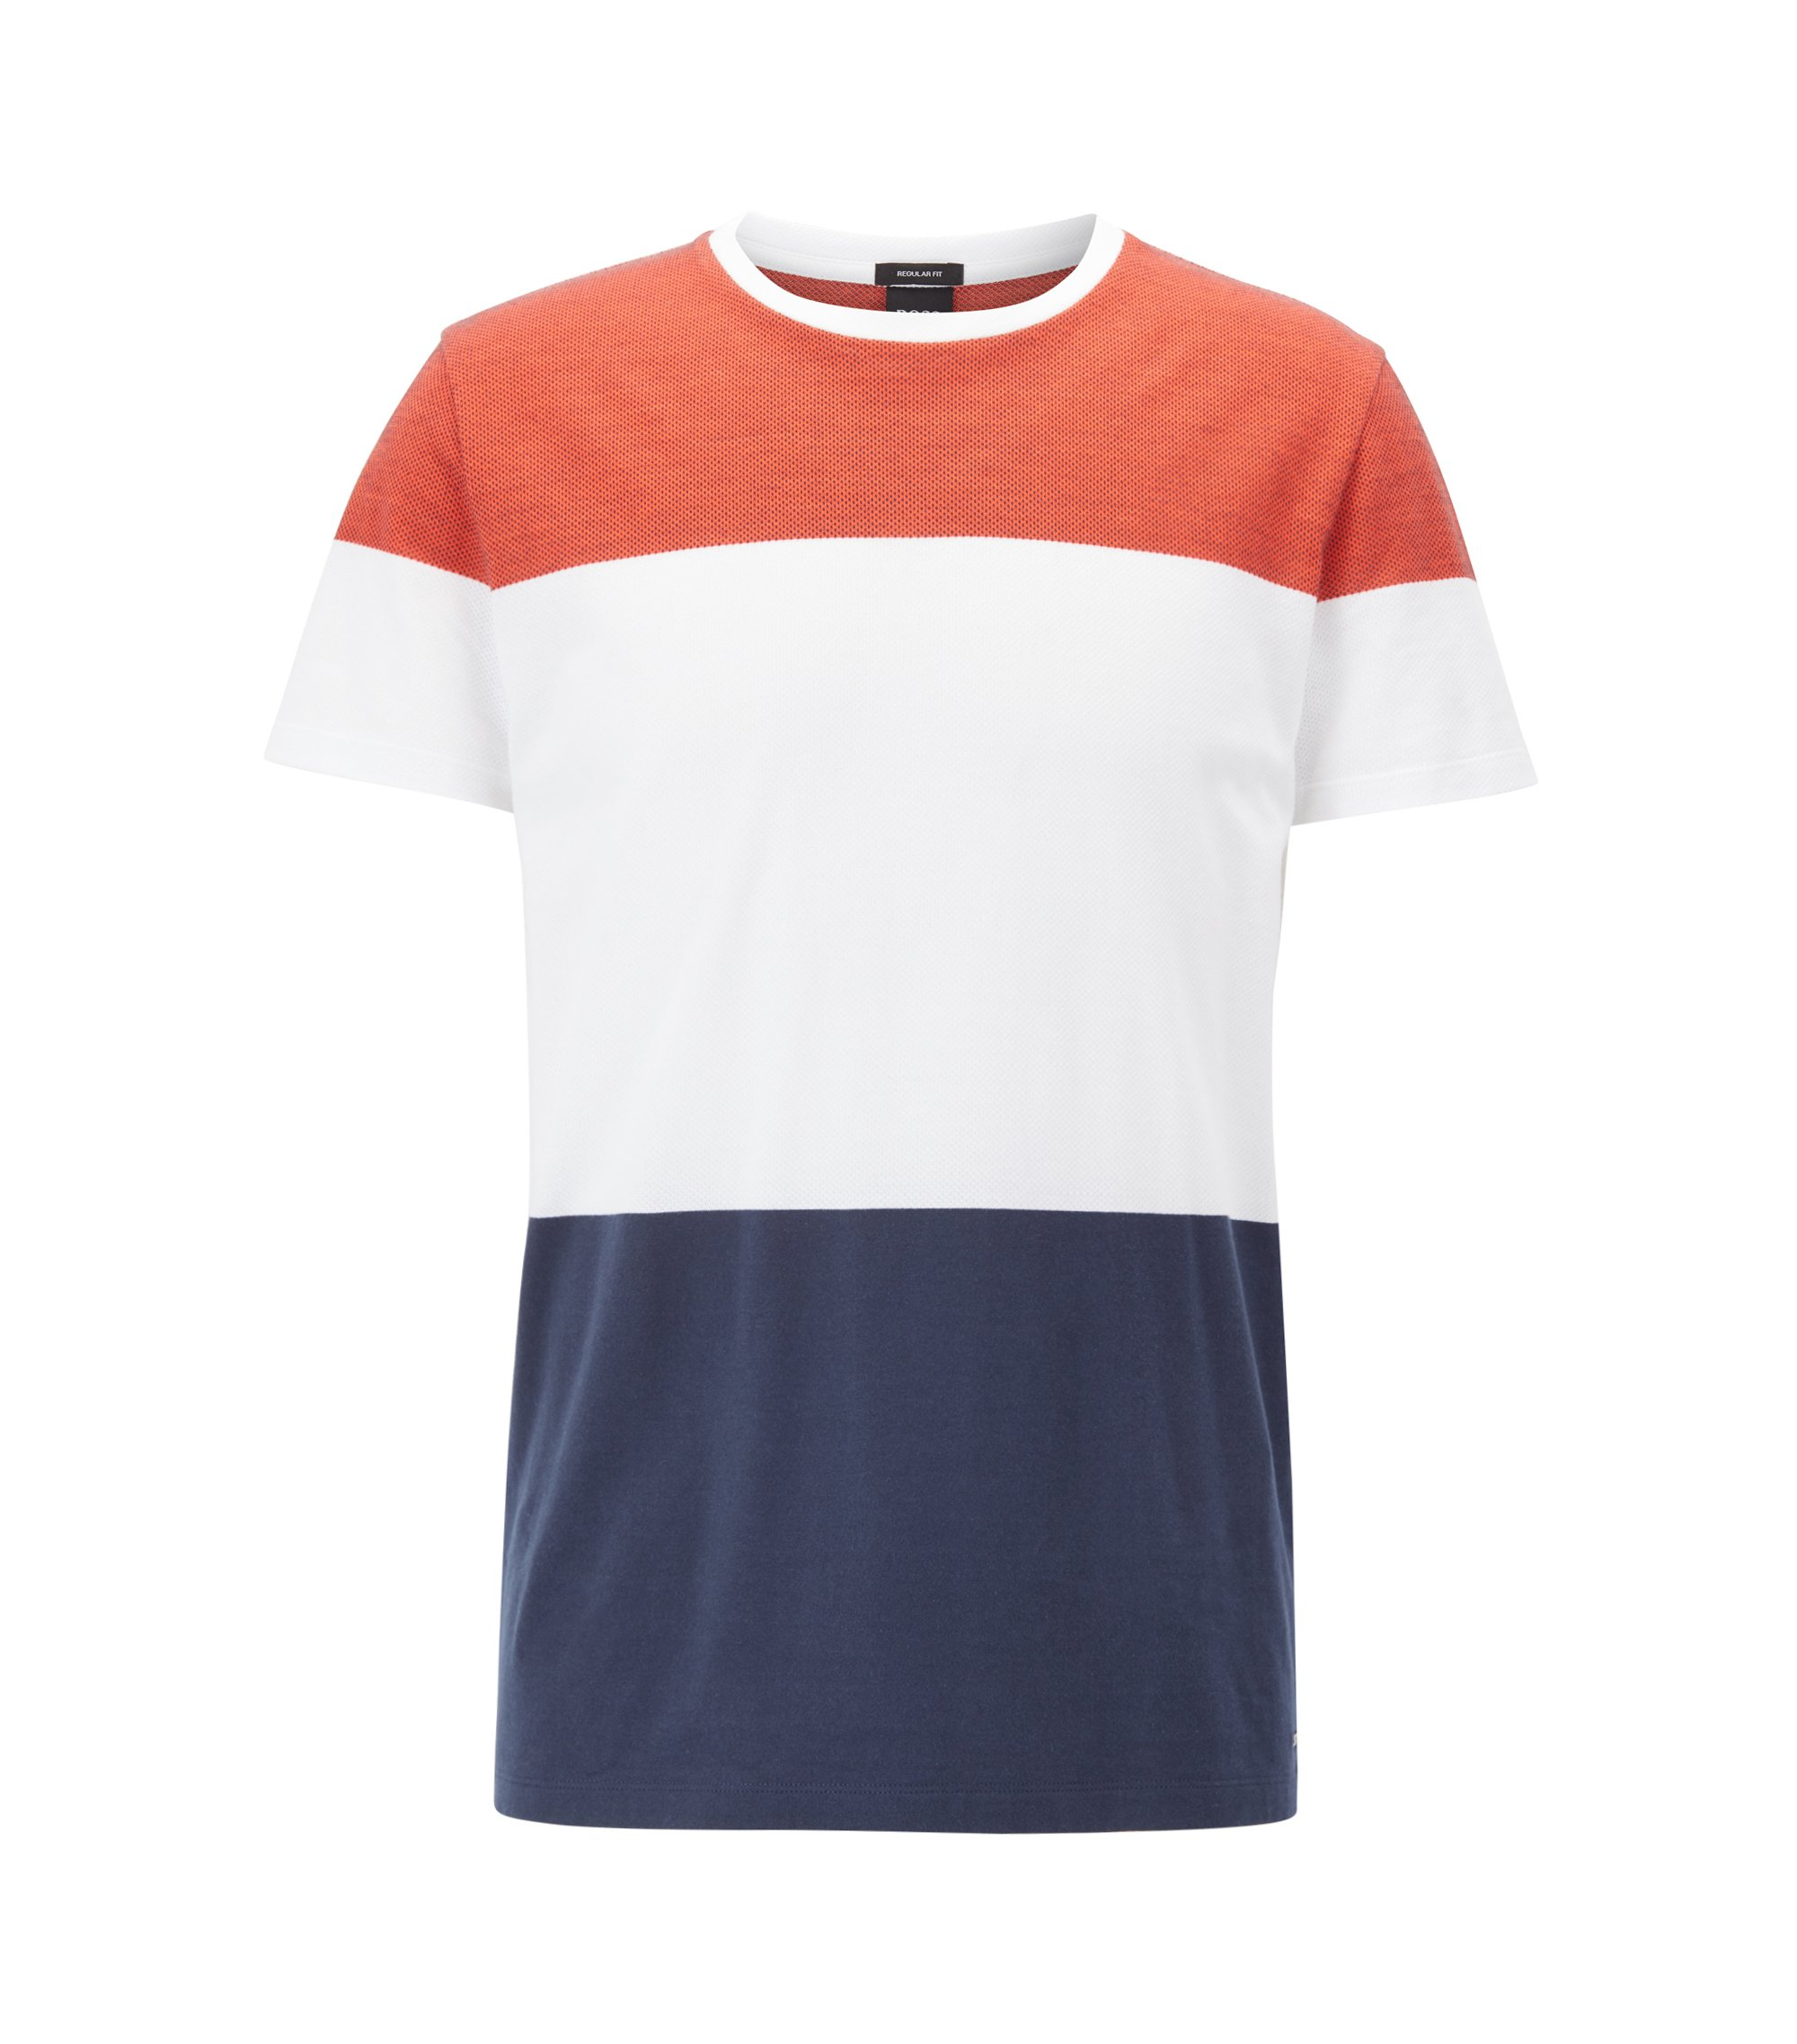 T-shirt à manches courtes en coton chiné69.95HUGO BOSS